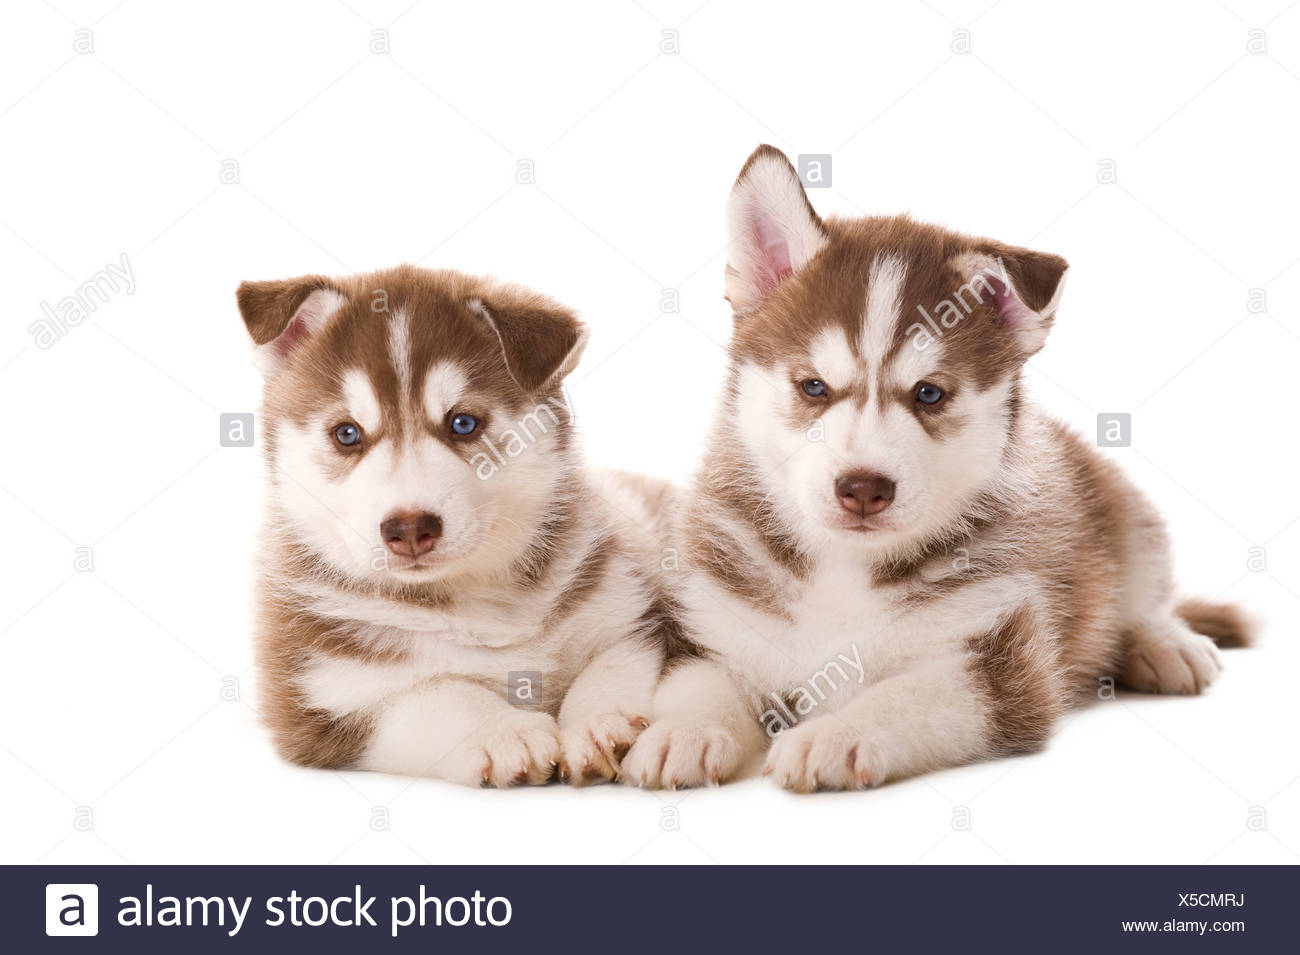 Siberian Husky. Two puppies lying. Studio picture against a white background - Stock Image